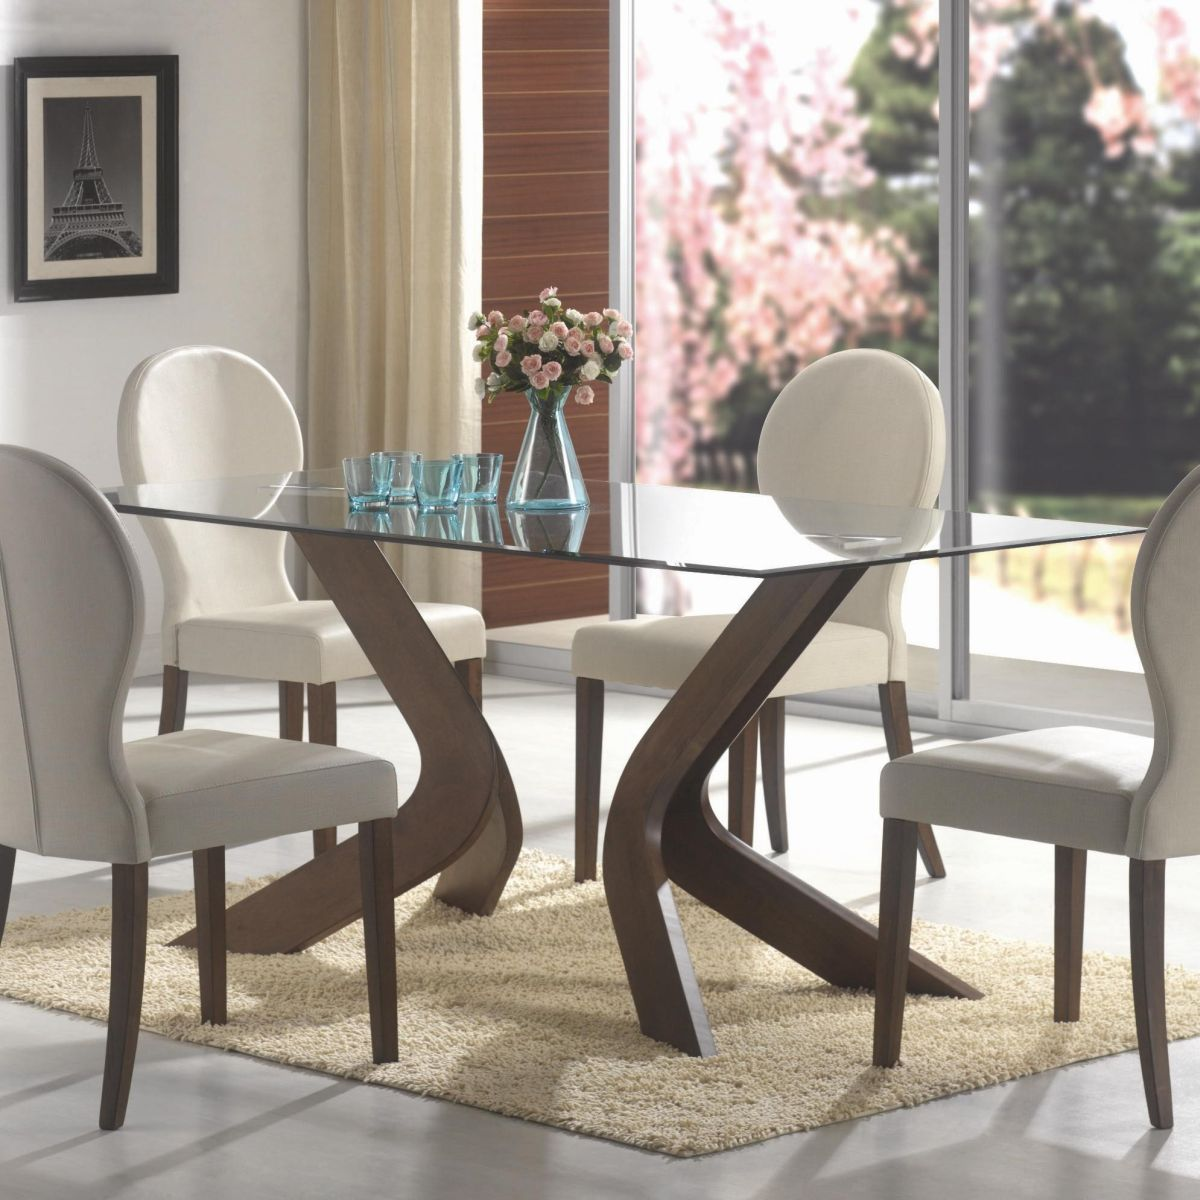 https://cdn.homedit.com/wp-content/uploads/2016/02/Oval-back-dining-chairs-and-glass-top-table.jpg